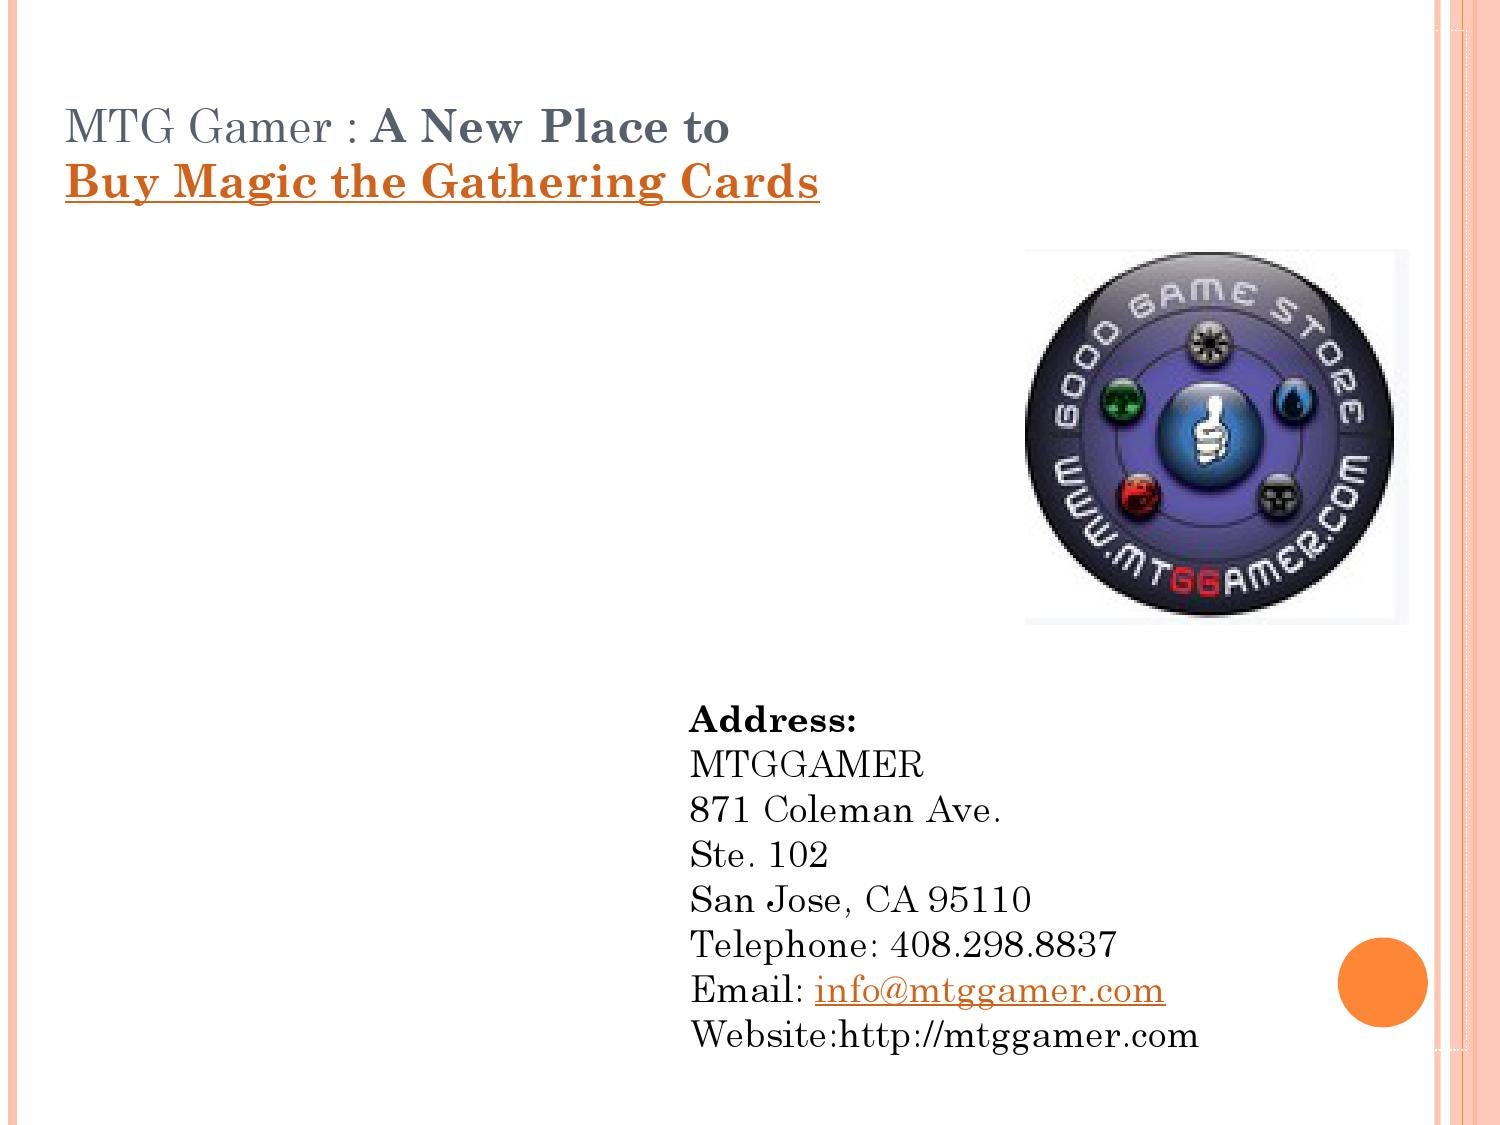 MTG Gamer: A New Place to Buy Magic the Gathering Cards by